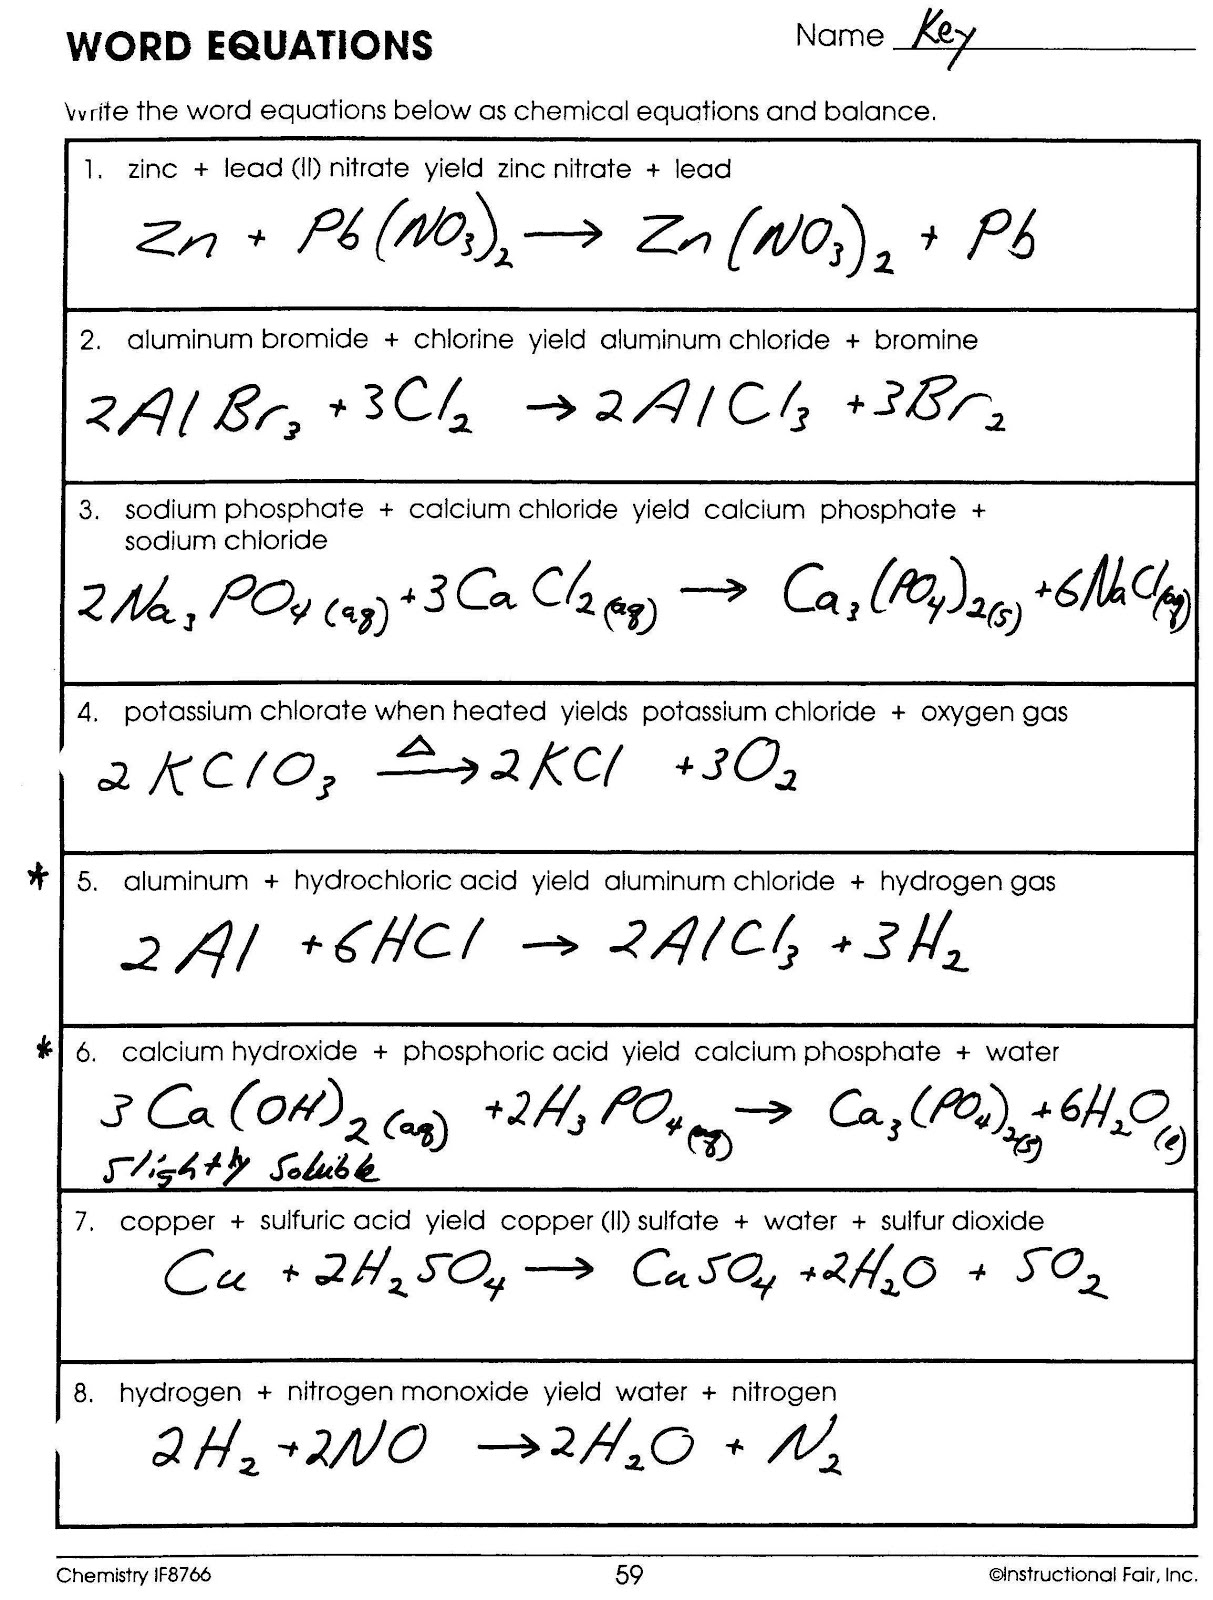 Mr Brueckners Chemistry Class HHS 201112 Key for Word – Balancing Chemical Equations Worksheet 3